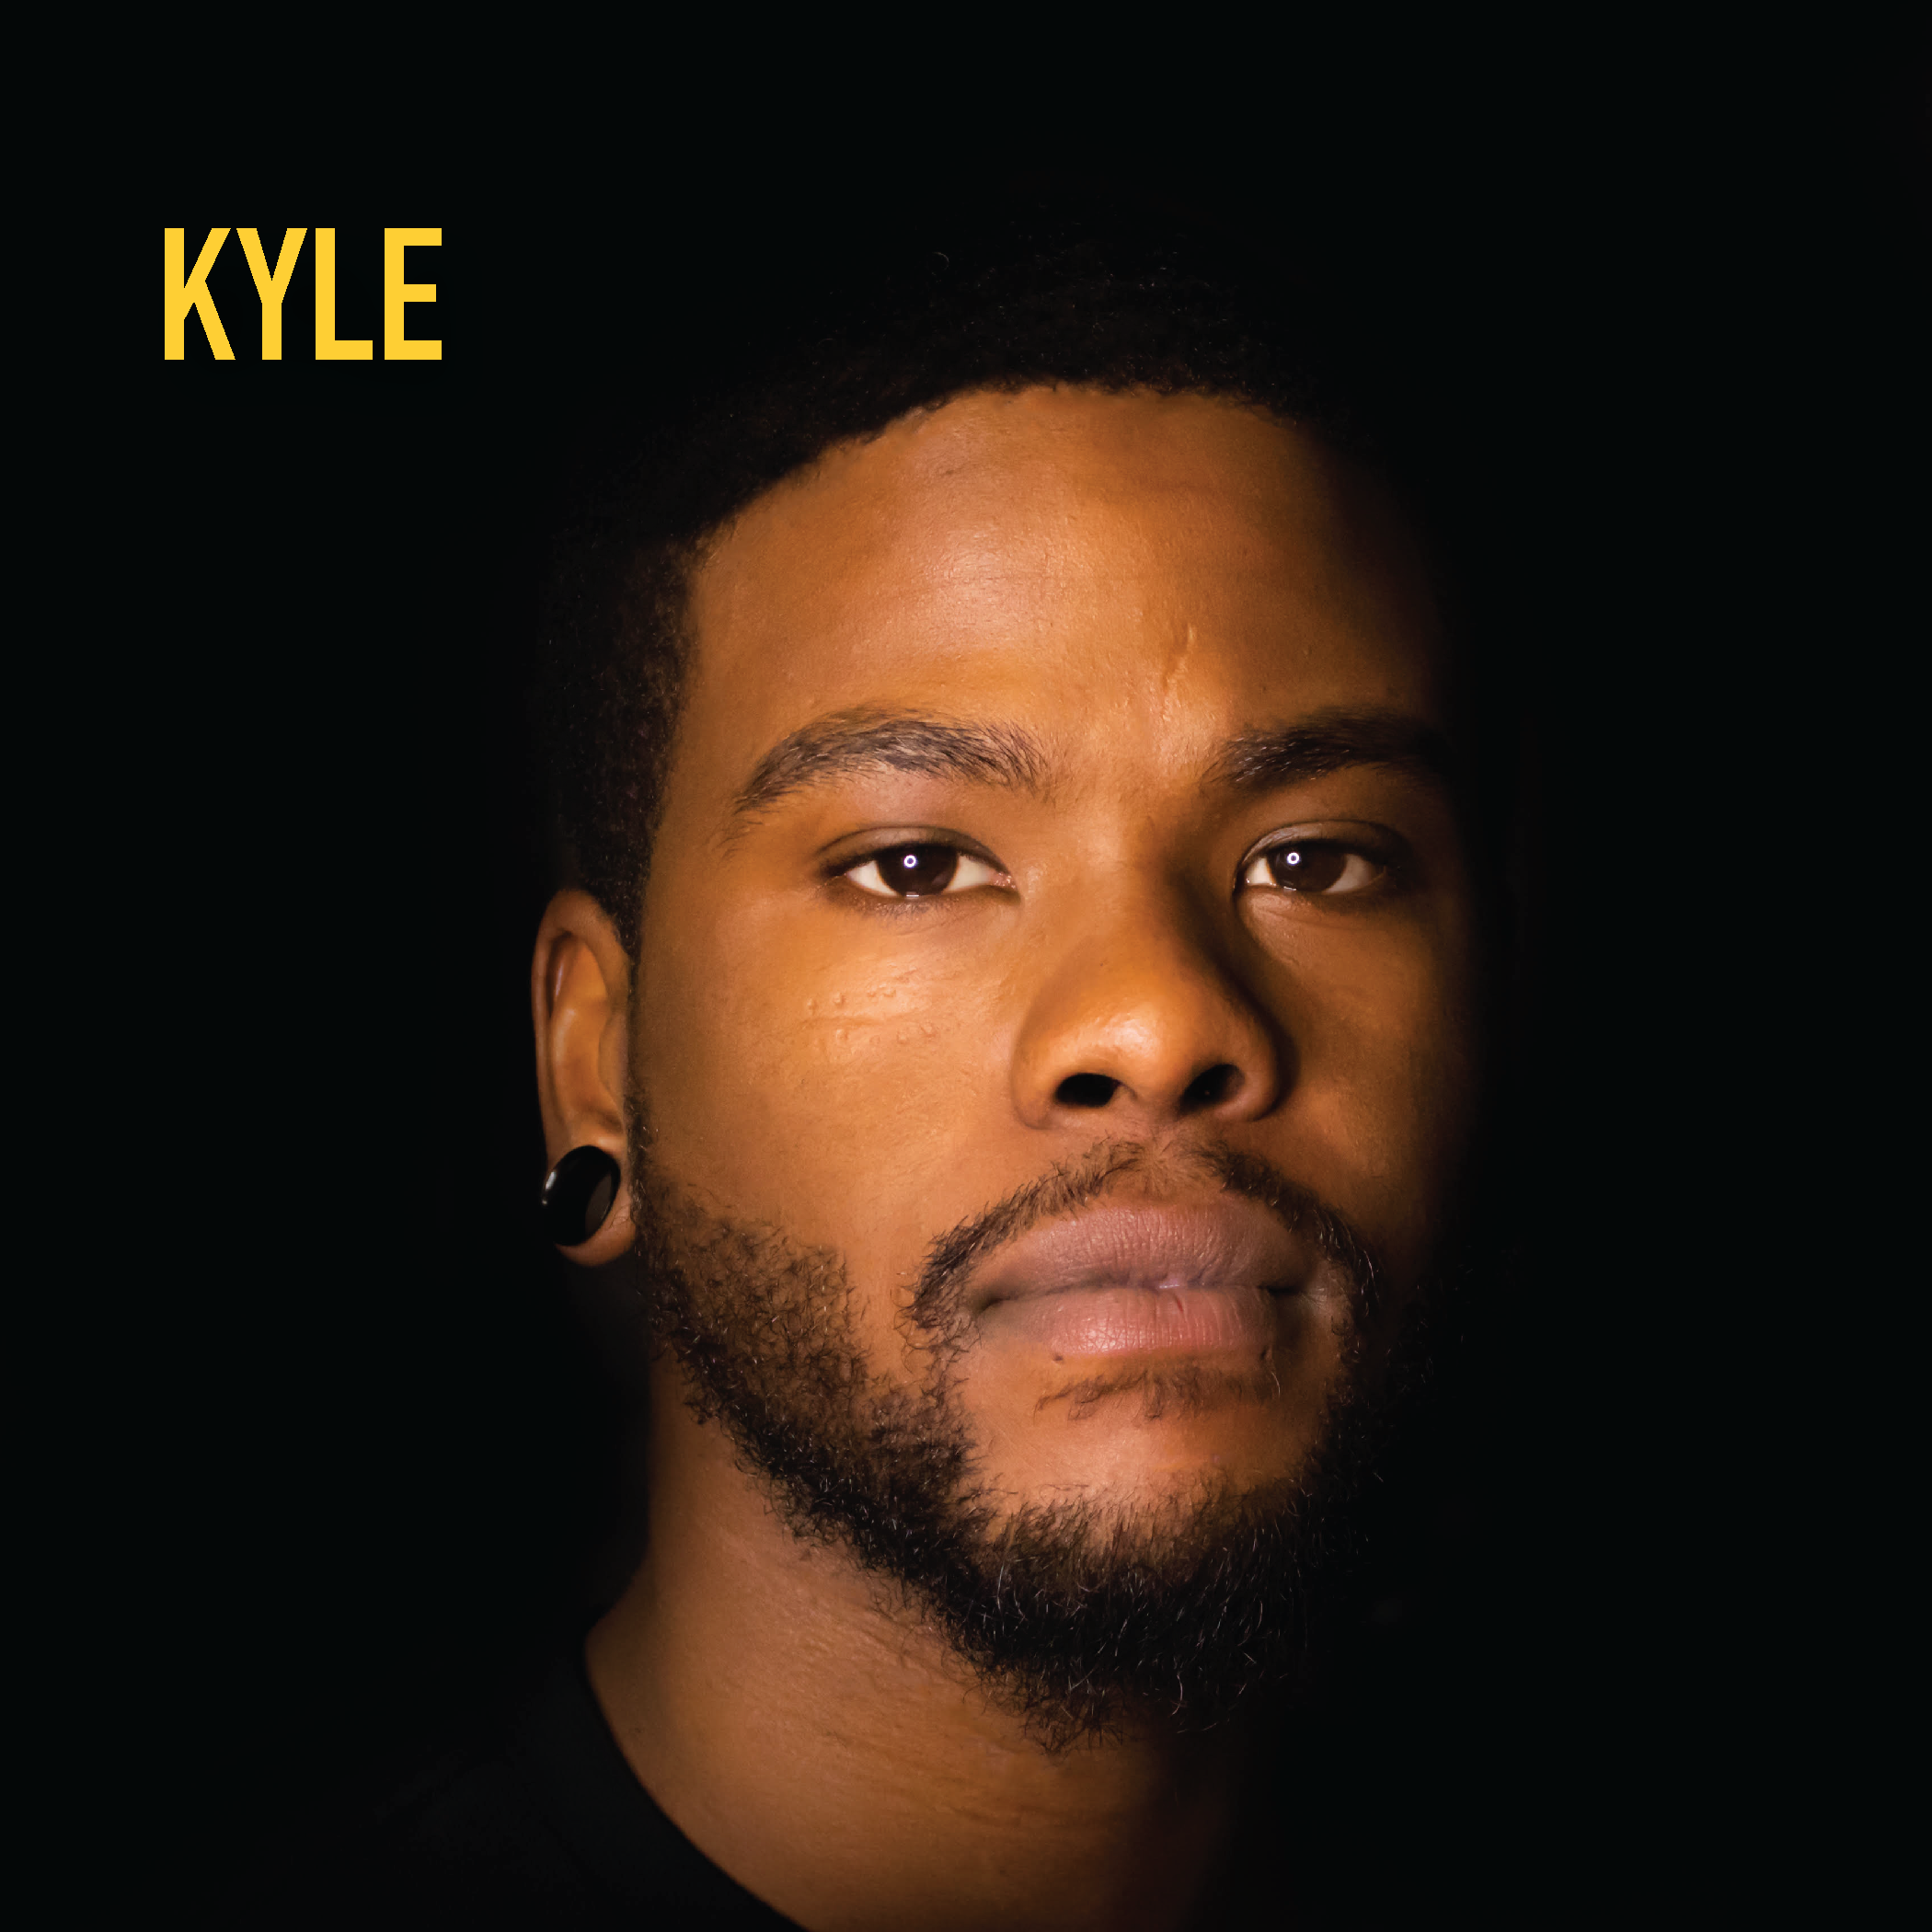 kyle_front-24.png